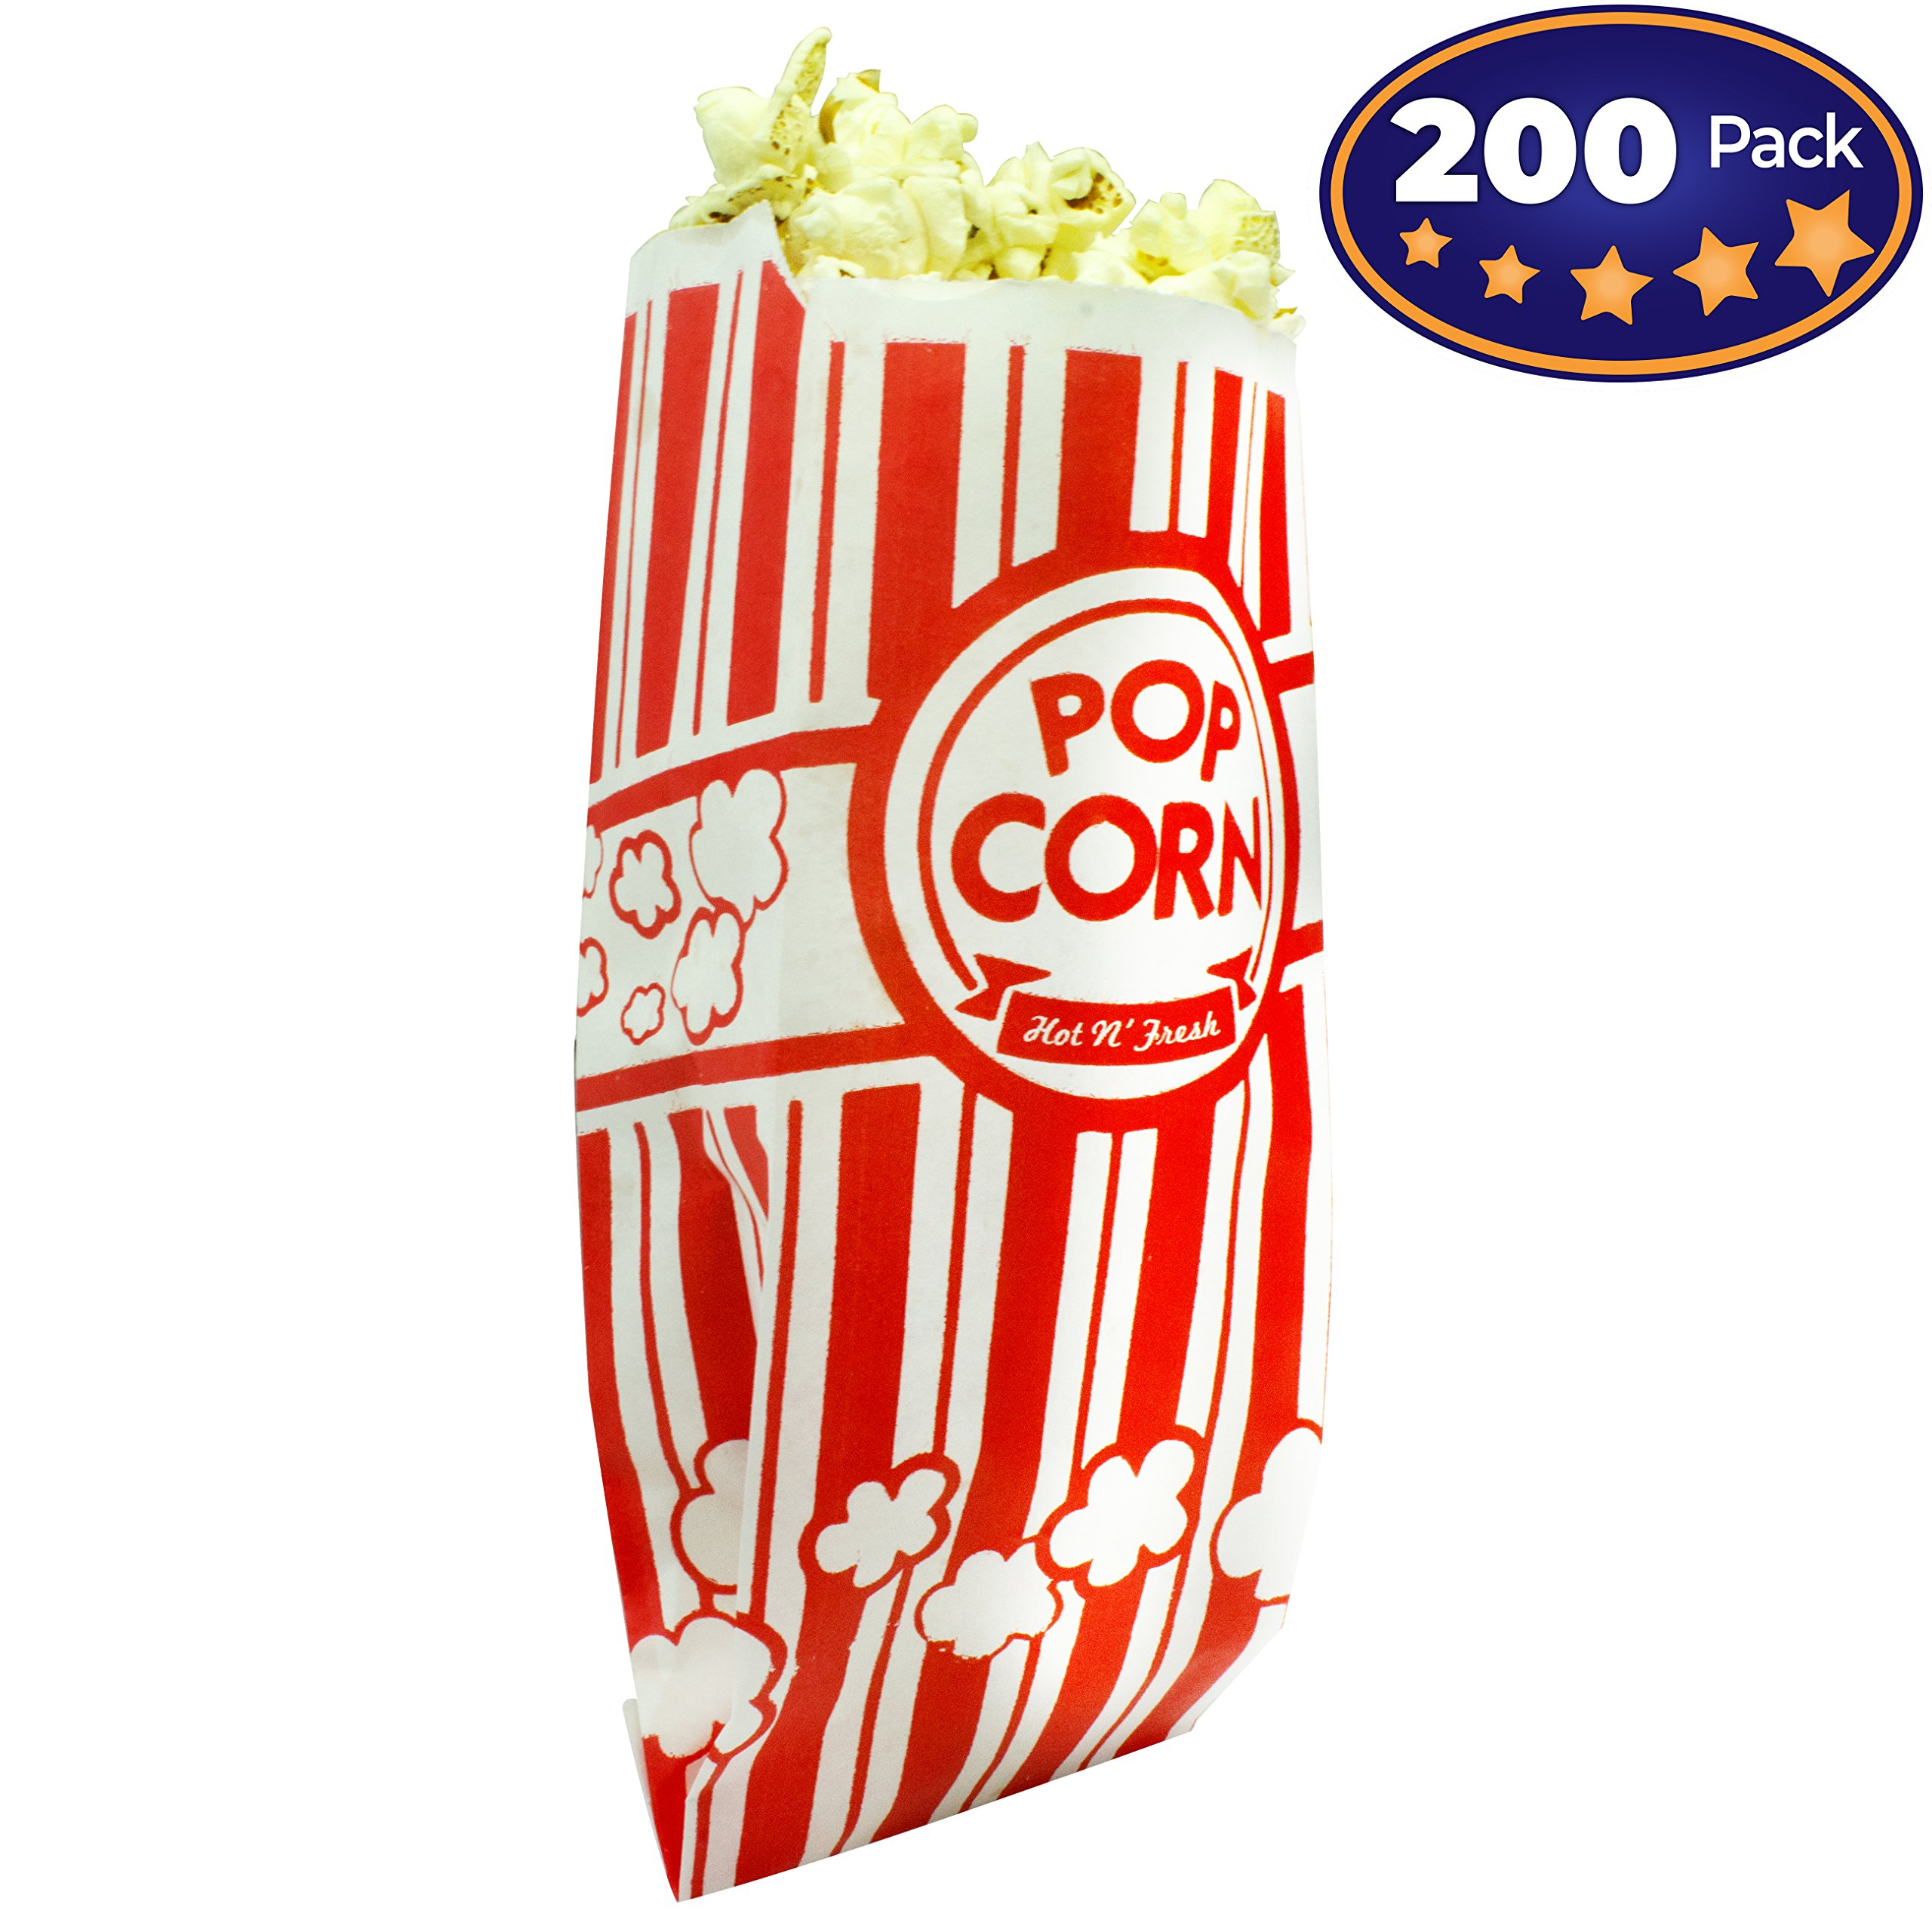 Popcorn Bags Coated for Leak/Tear Resistance. Single Serving 1oz Paper Sleeves in Nostalgic Red/White Design. Great Movie Theme Party Supplies or for Old Fashioned Carnivals & Fundraisers! (200)